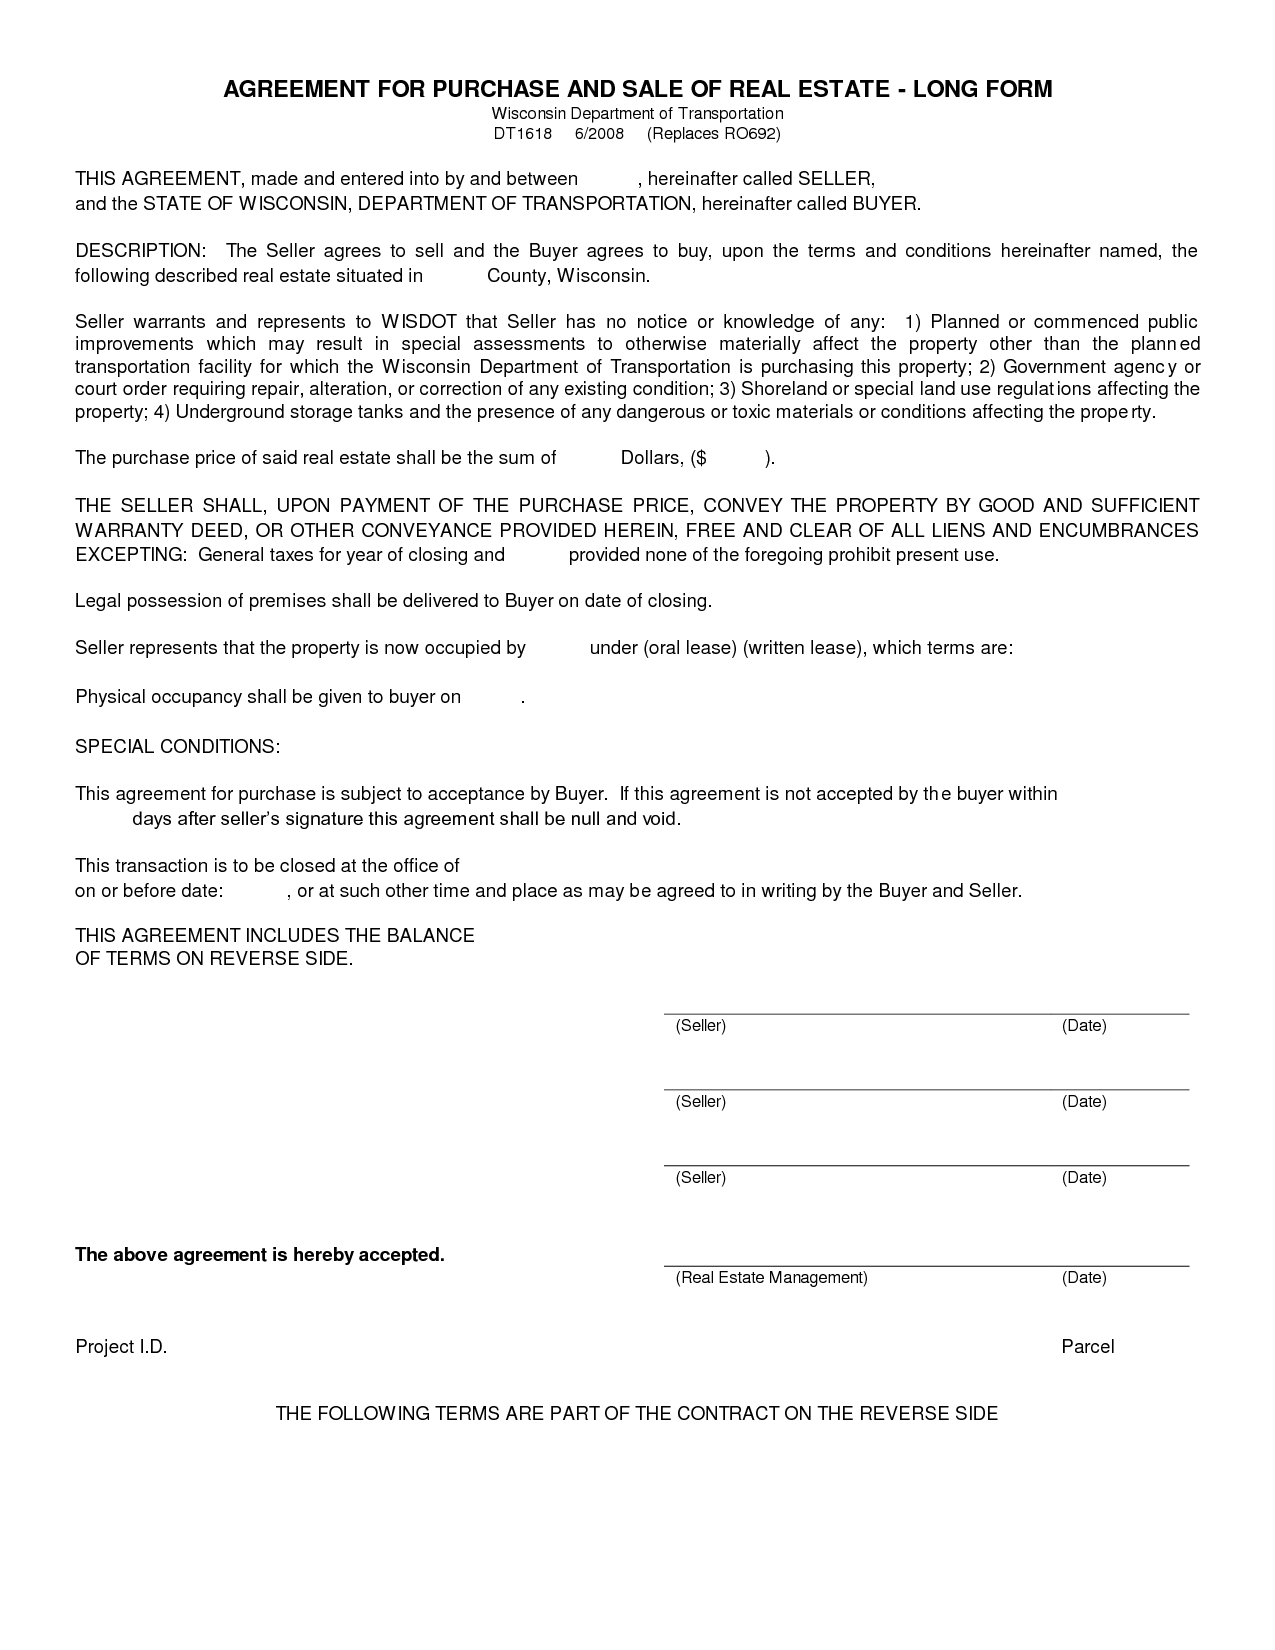 Free Blank Purchase Agreement Form Images - Agreement To Purchase - Free Printable Purchase Agreement Template